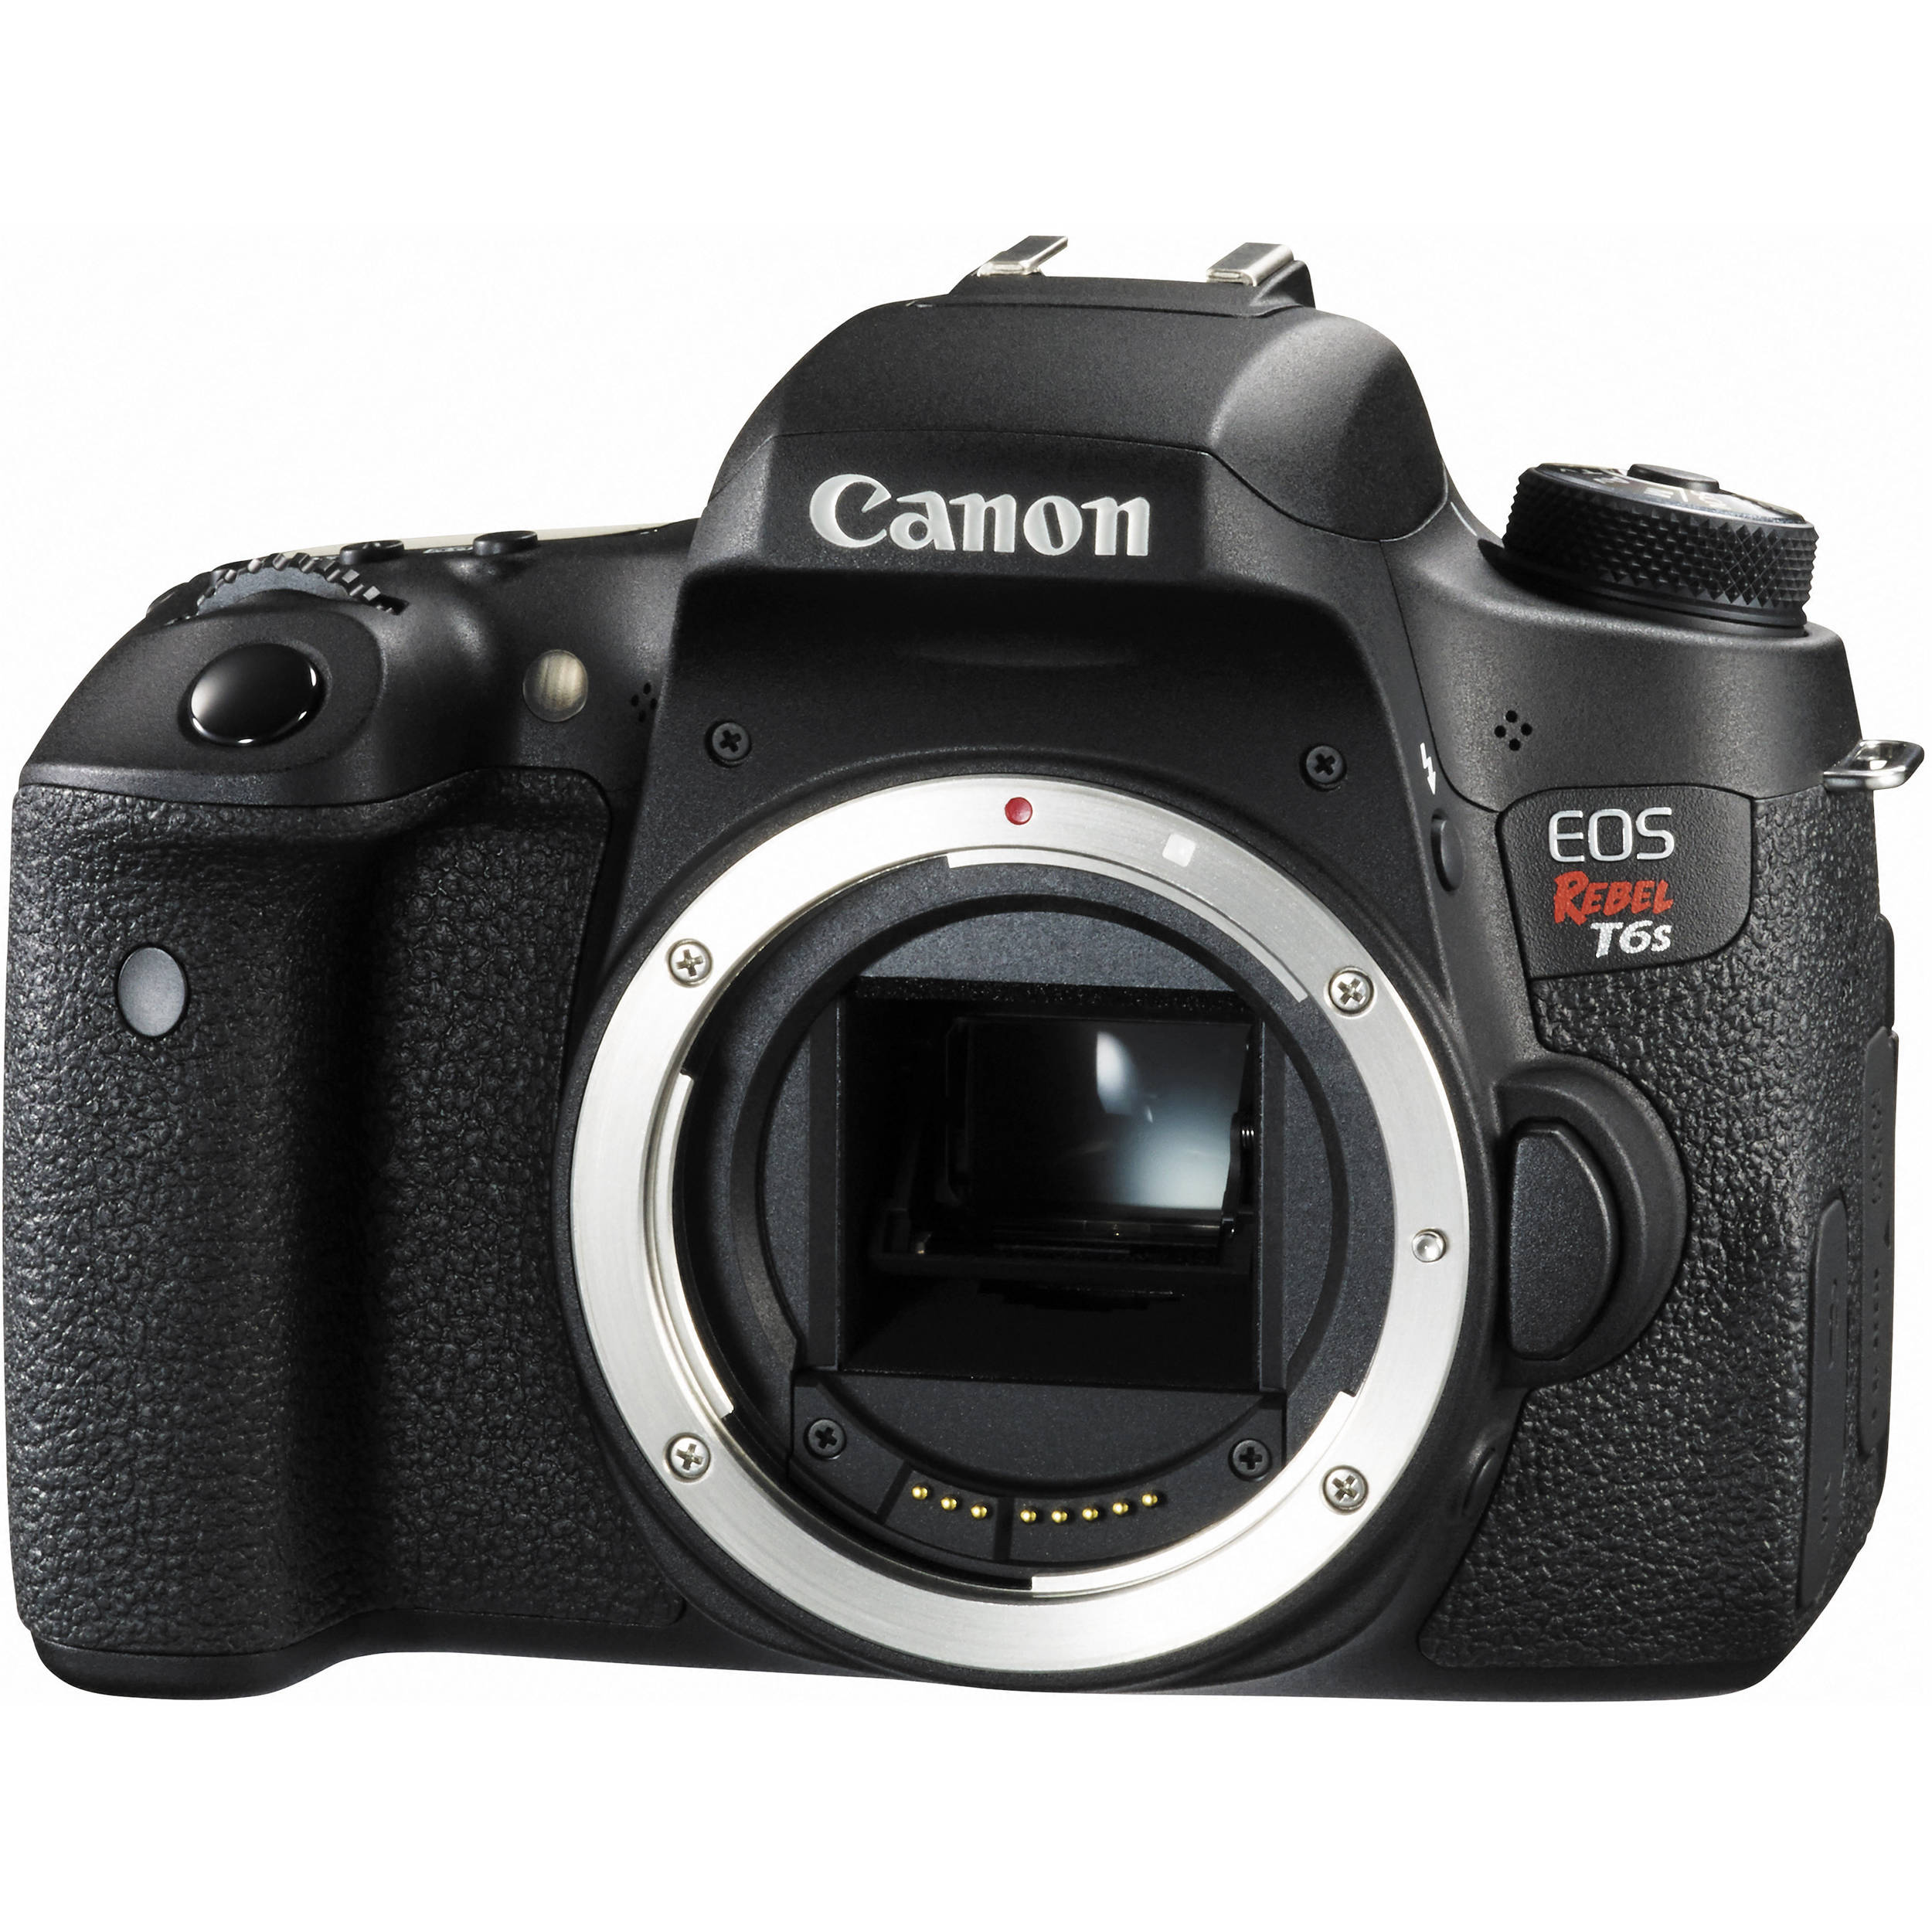 Camera Beginners Dslr Camera Guide 9 recommended entry level dslr cameras bh explora canon eos rebel t6s camera